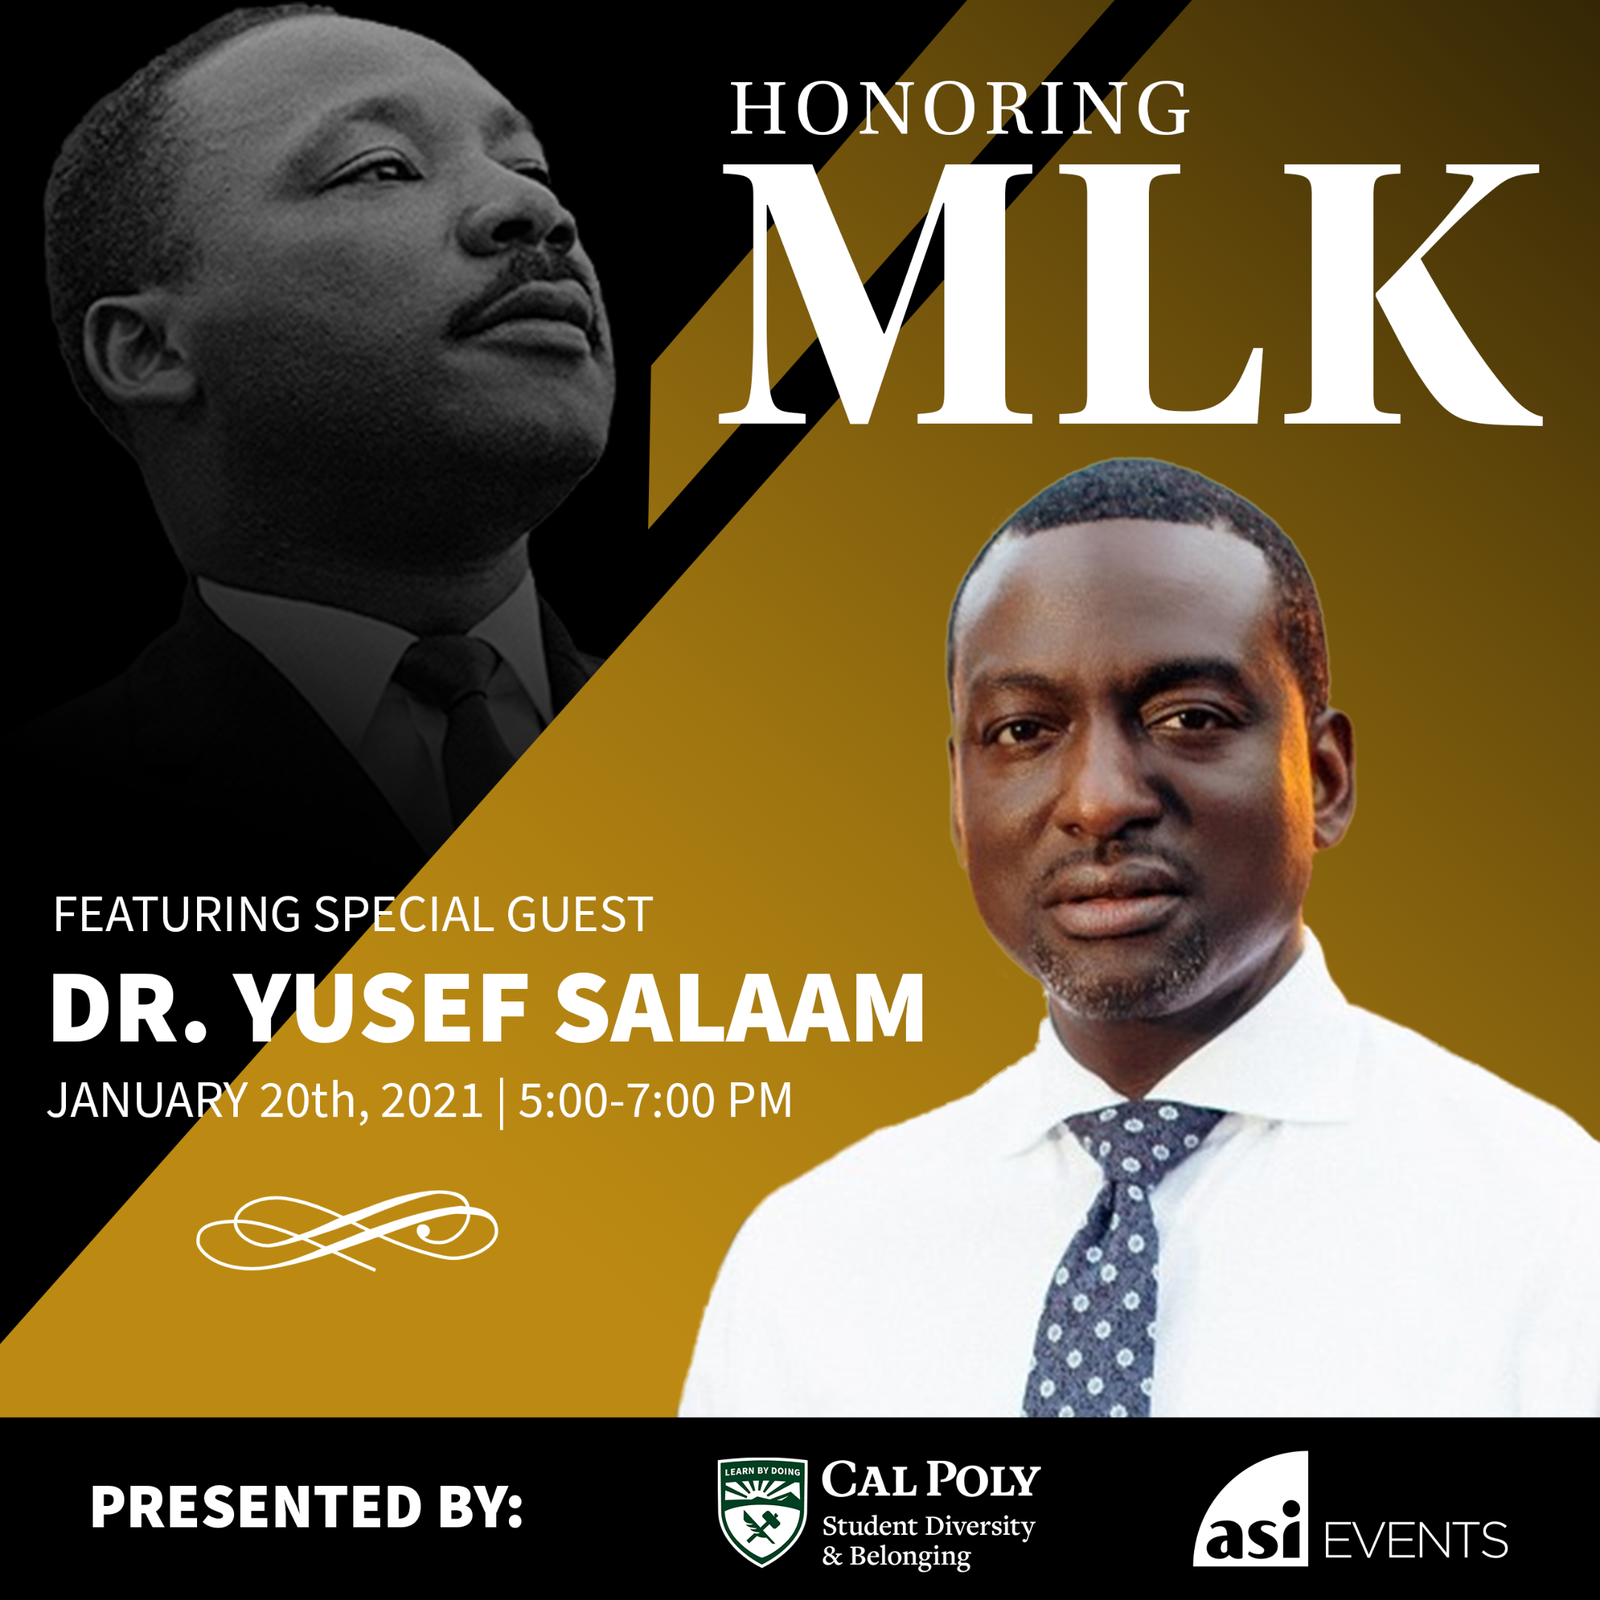 The Fifth Annual Martin Luther King, Jr. celebration will honor feature special guest Dr. Yusef Salaam from 5 to 7 p.m. Jan. 20. The event is presented by Cal Poly Student Diversity and Belonging and ASI Events.